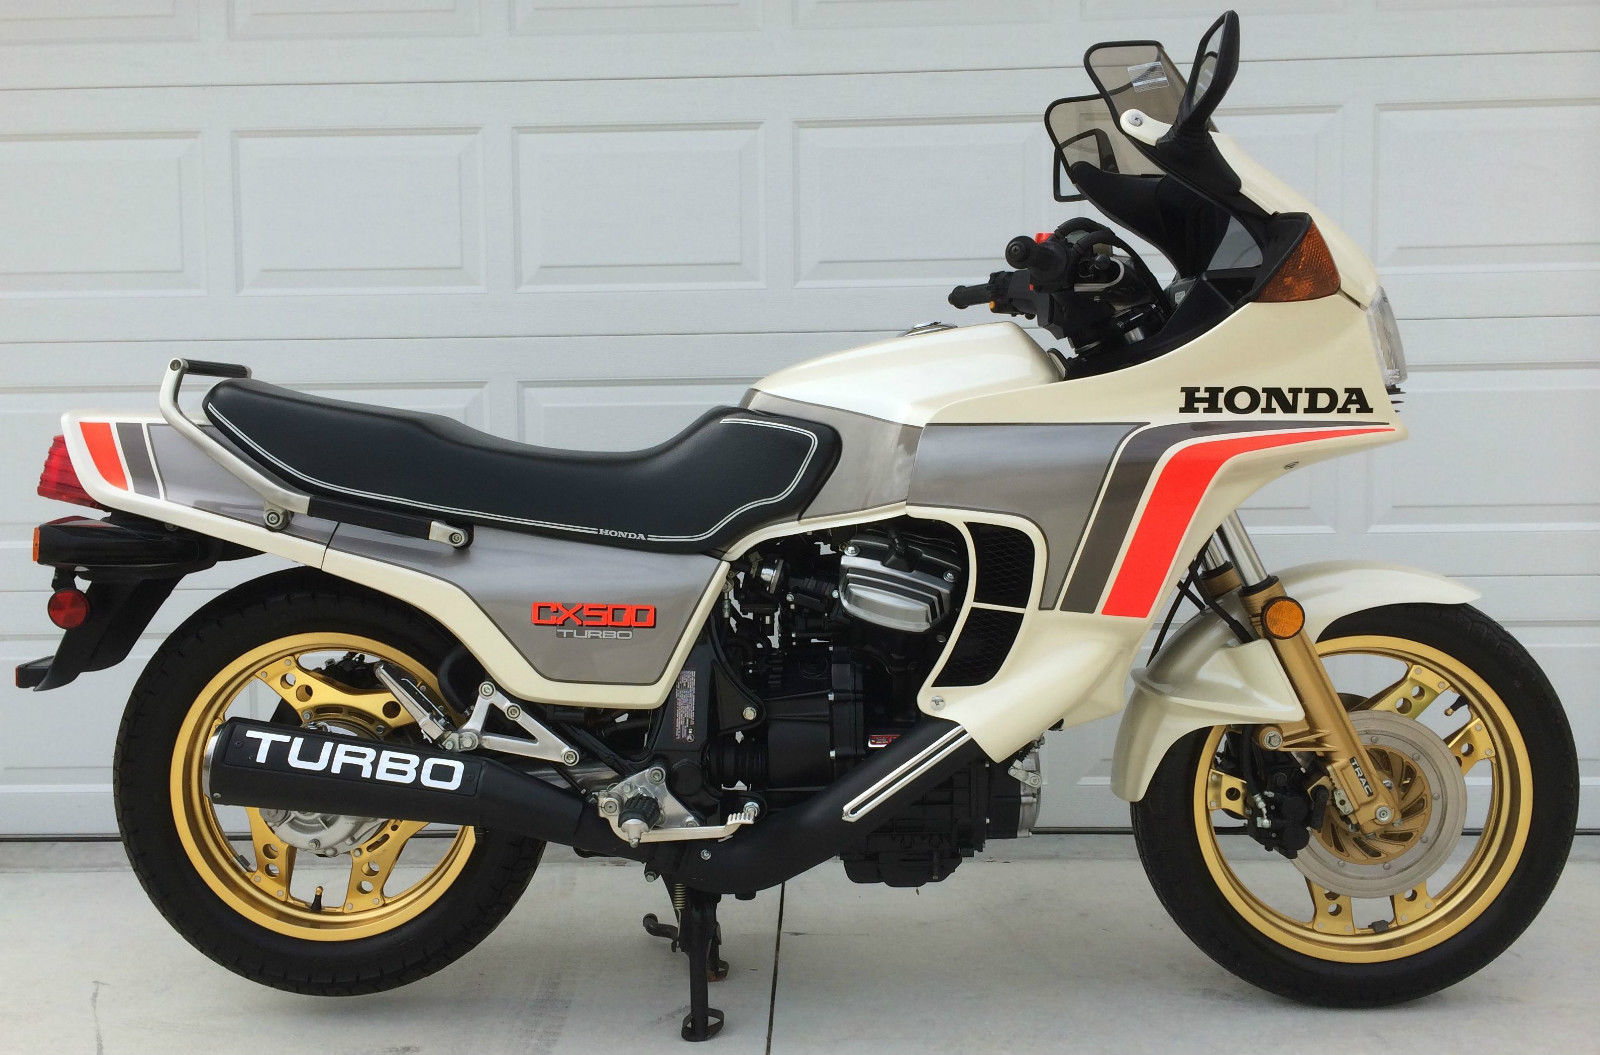 190 Miles – 1982 Honda CX500 Turbo